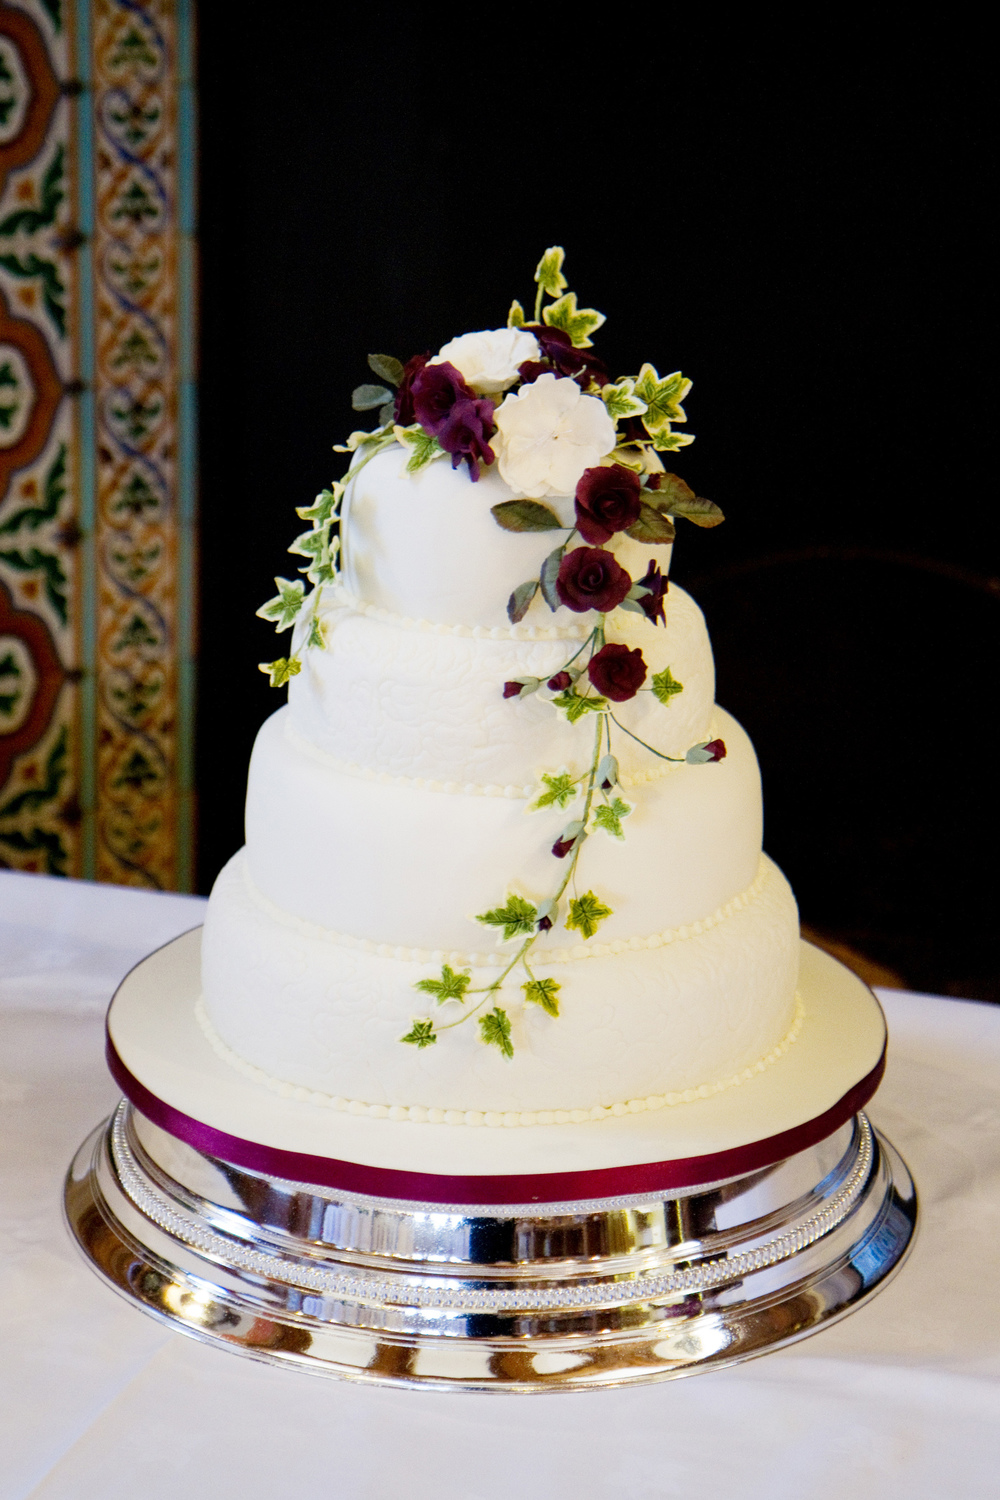 Red Rose Four Tier Wedding Cake, Helen England Photography, Kent, U.K